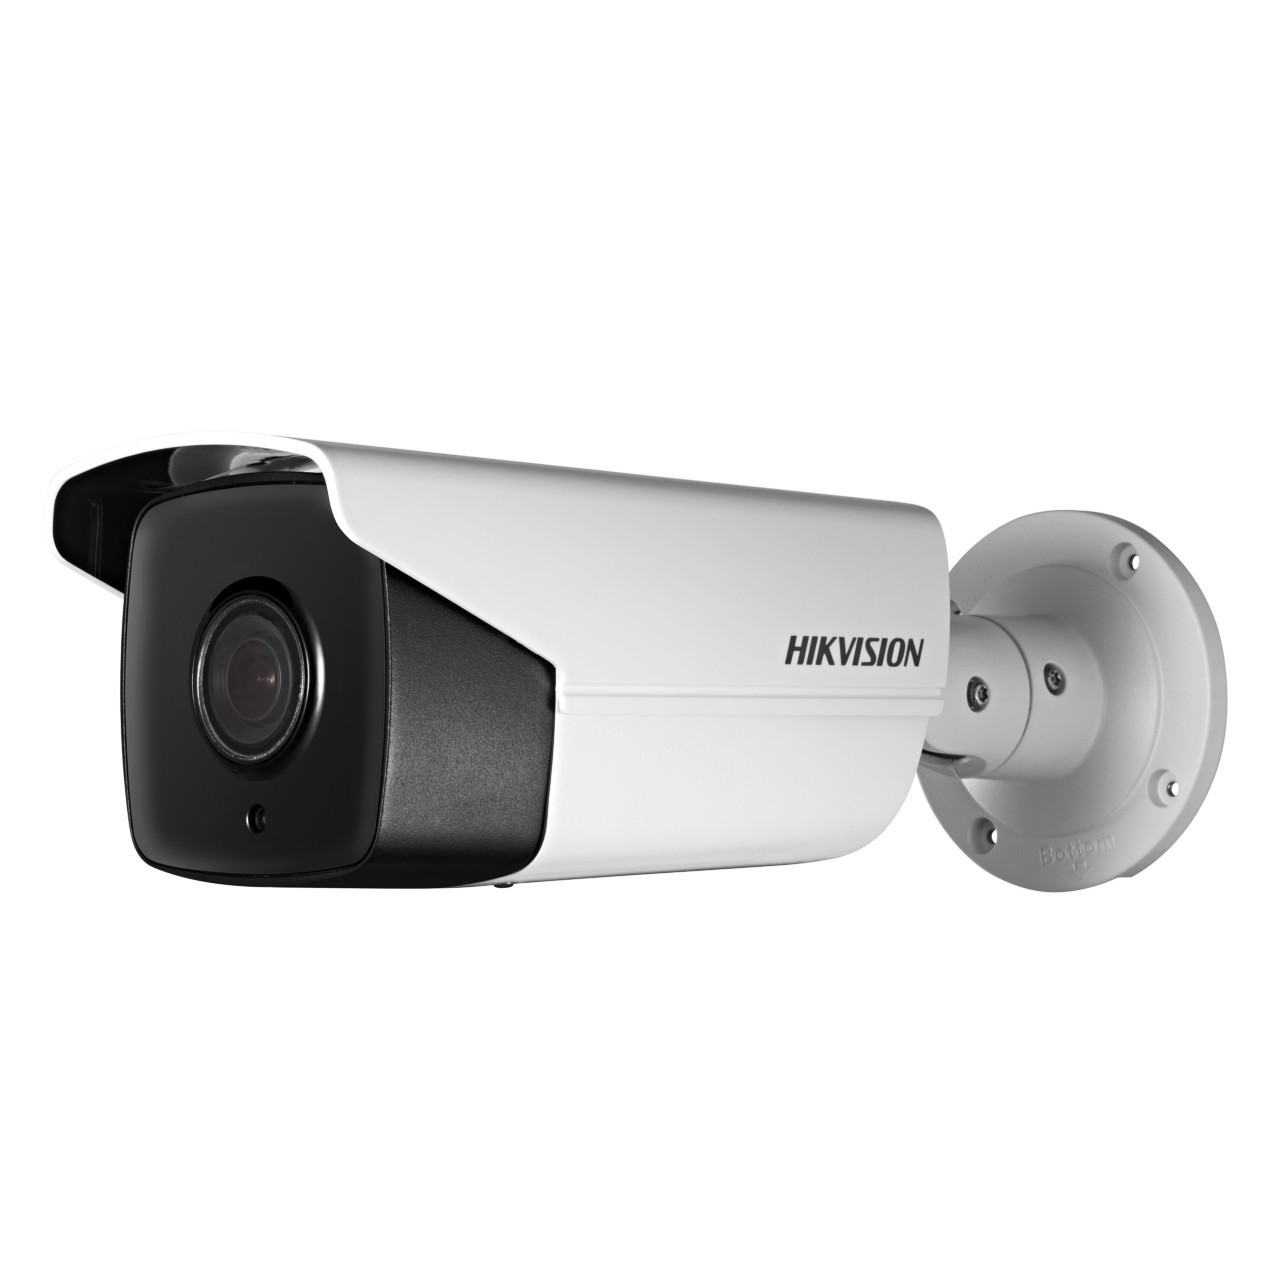 Hikvision DS-2CD2T42WD-I5 4MP Exir 50M Exir IR POE Bullet IP Network Security Camera CCTV 4MM